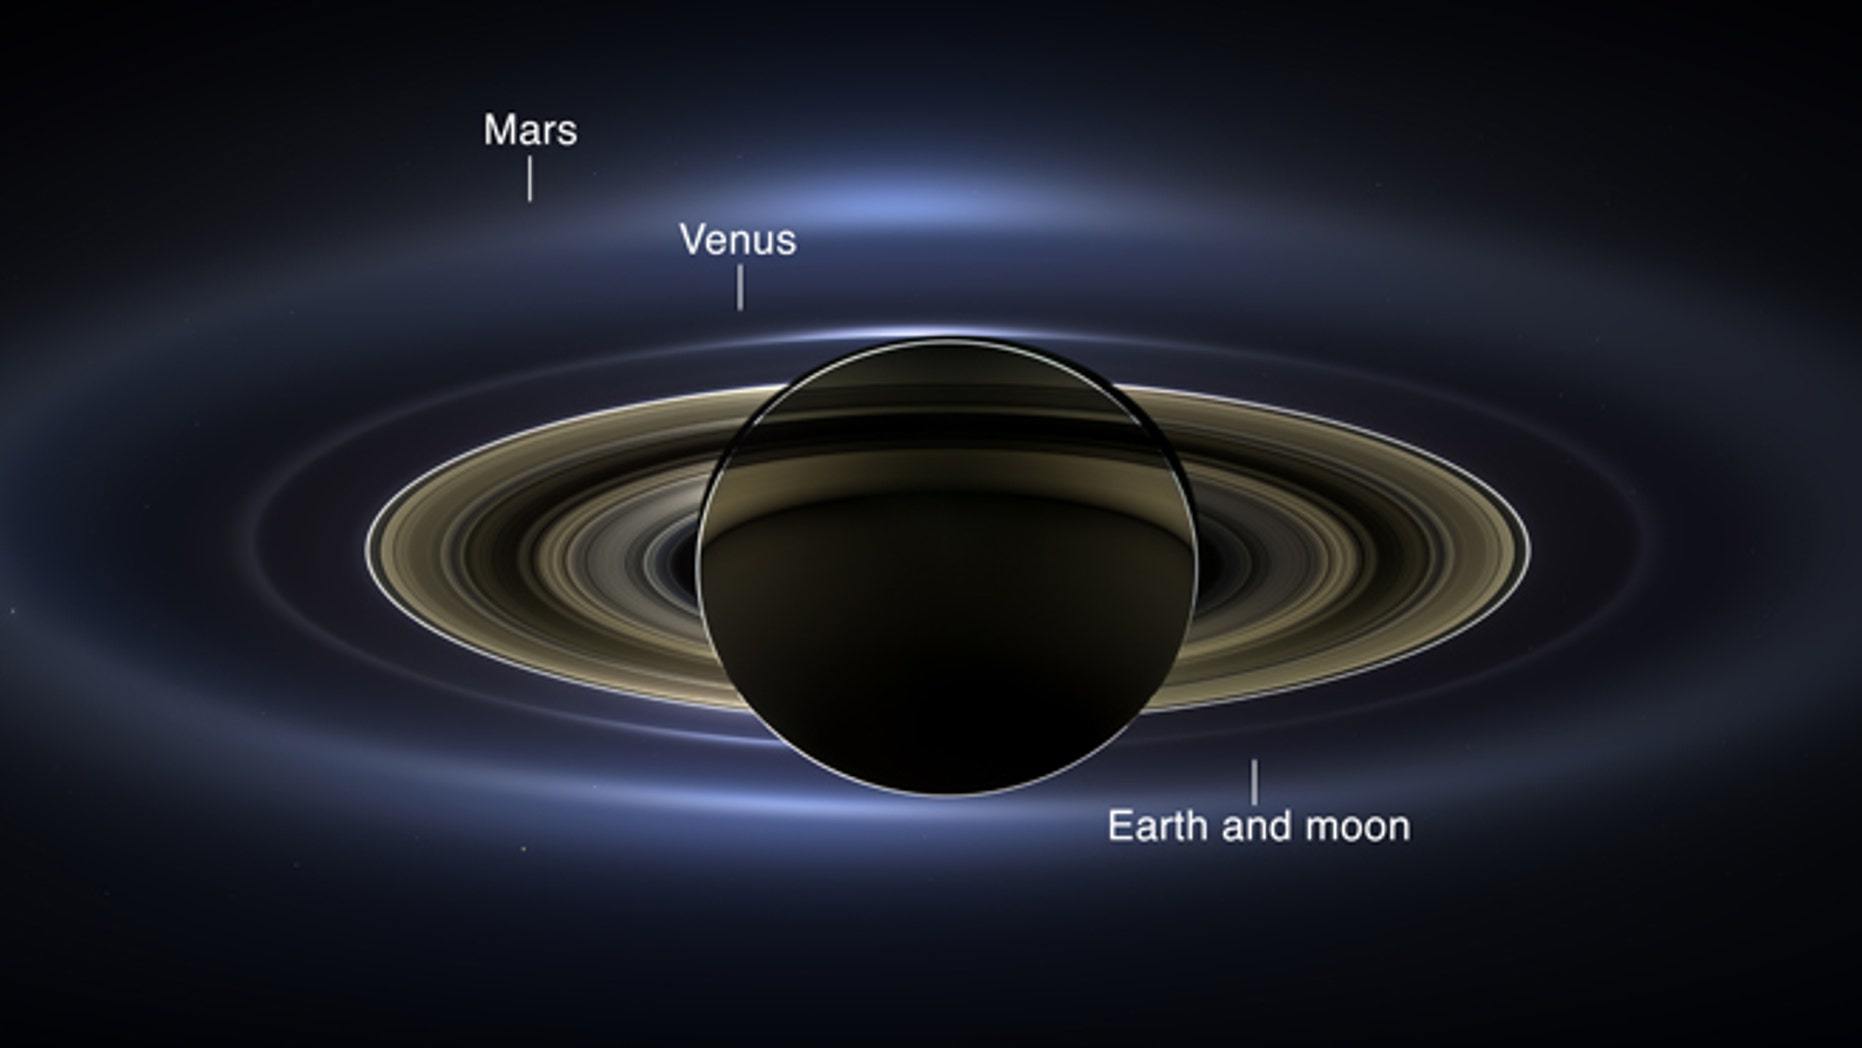 July 19, 2013: NASA's Cassini spacecraft slipped into Saturn's shadow and turned to image the planet, seven of its moons, its inner rings -- and, in the background, our home planet, Earth.